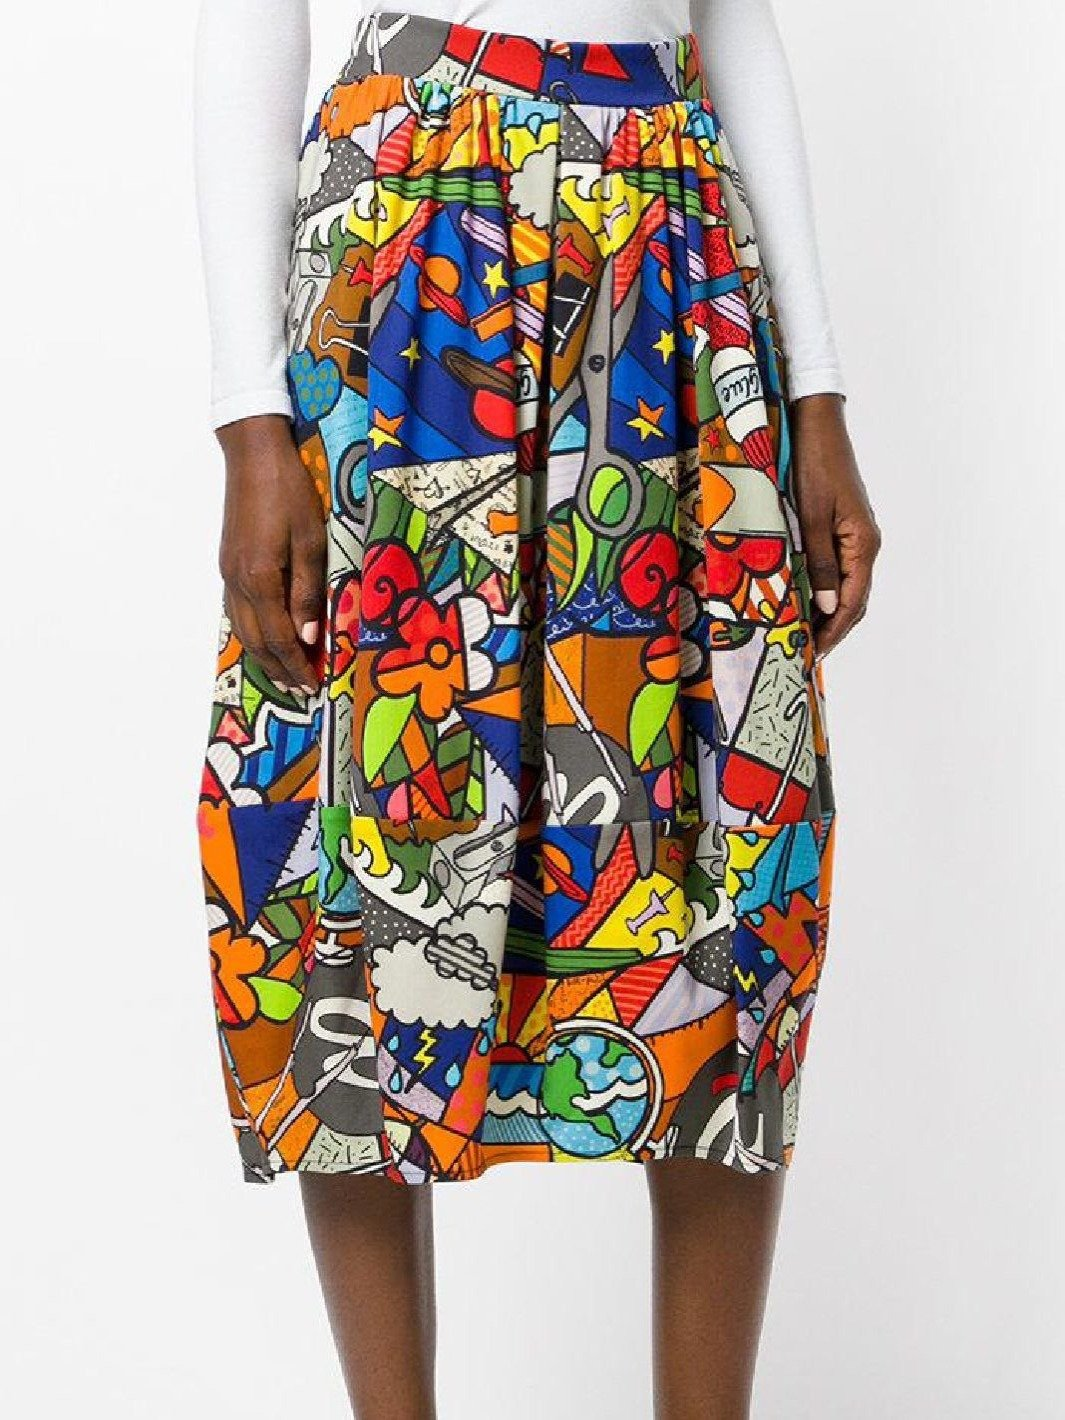 Balloon School Print Wool Skirt - The Bobby Boga